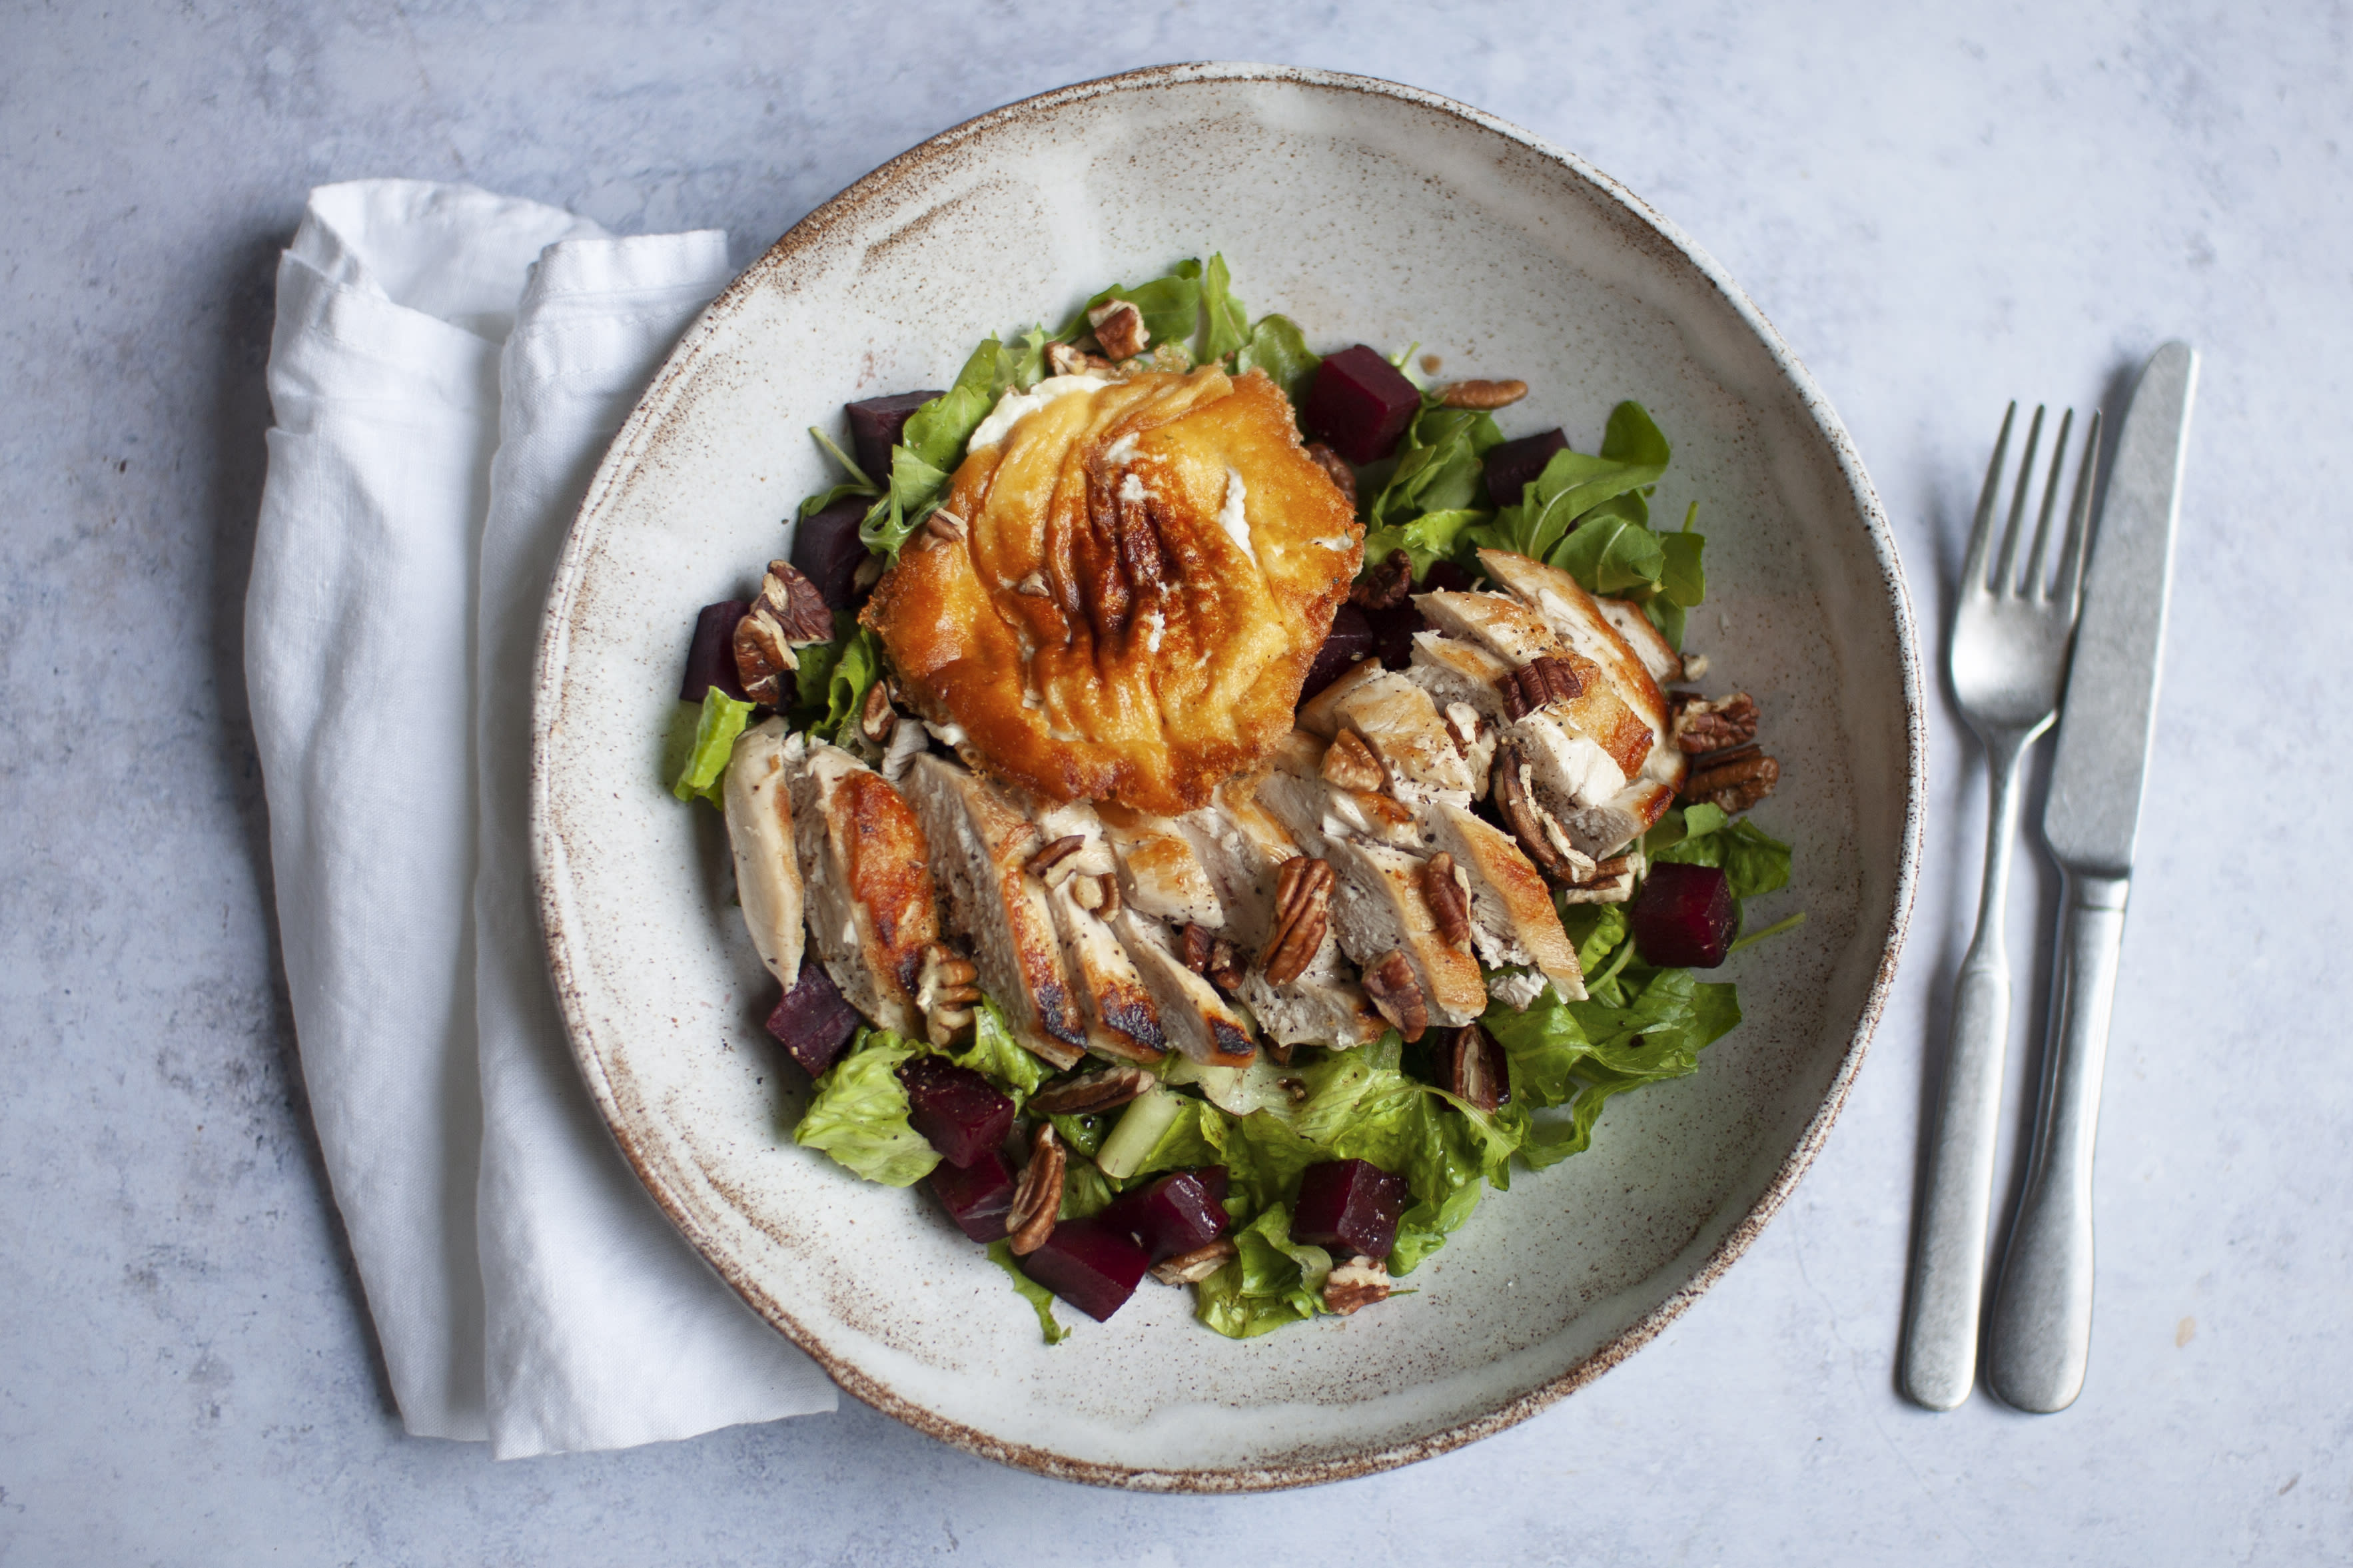 Maple Glazed Chicken Salad with Goat Cheese and Pecan Nuts